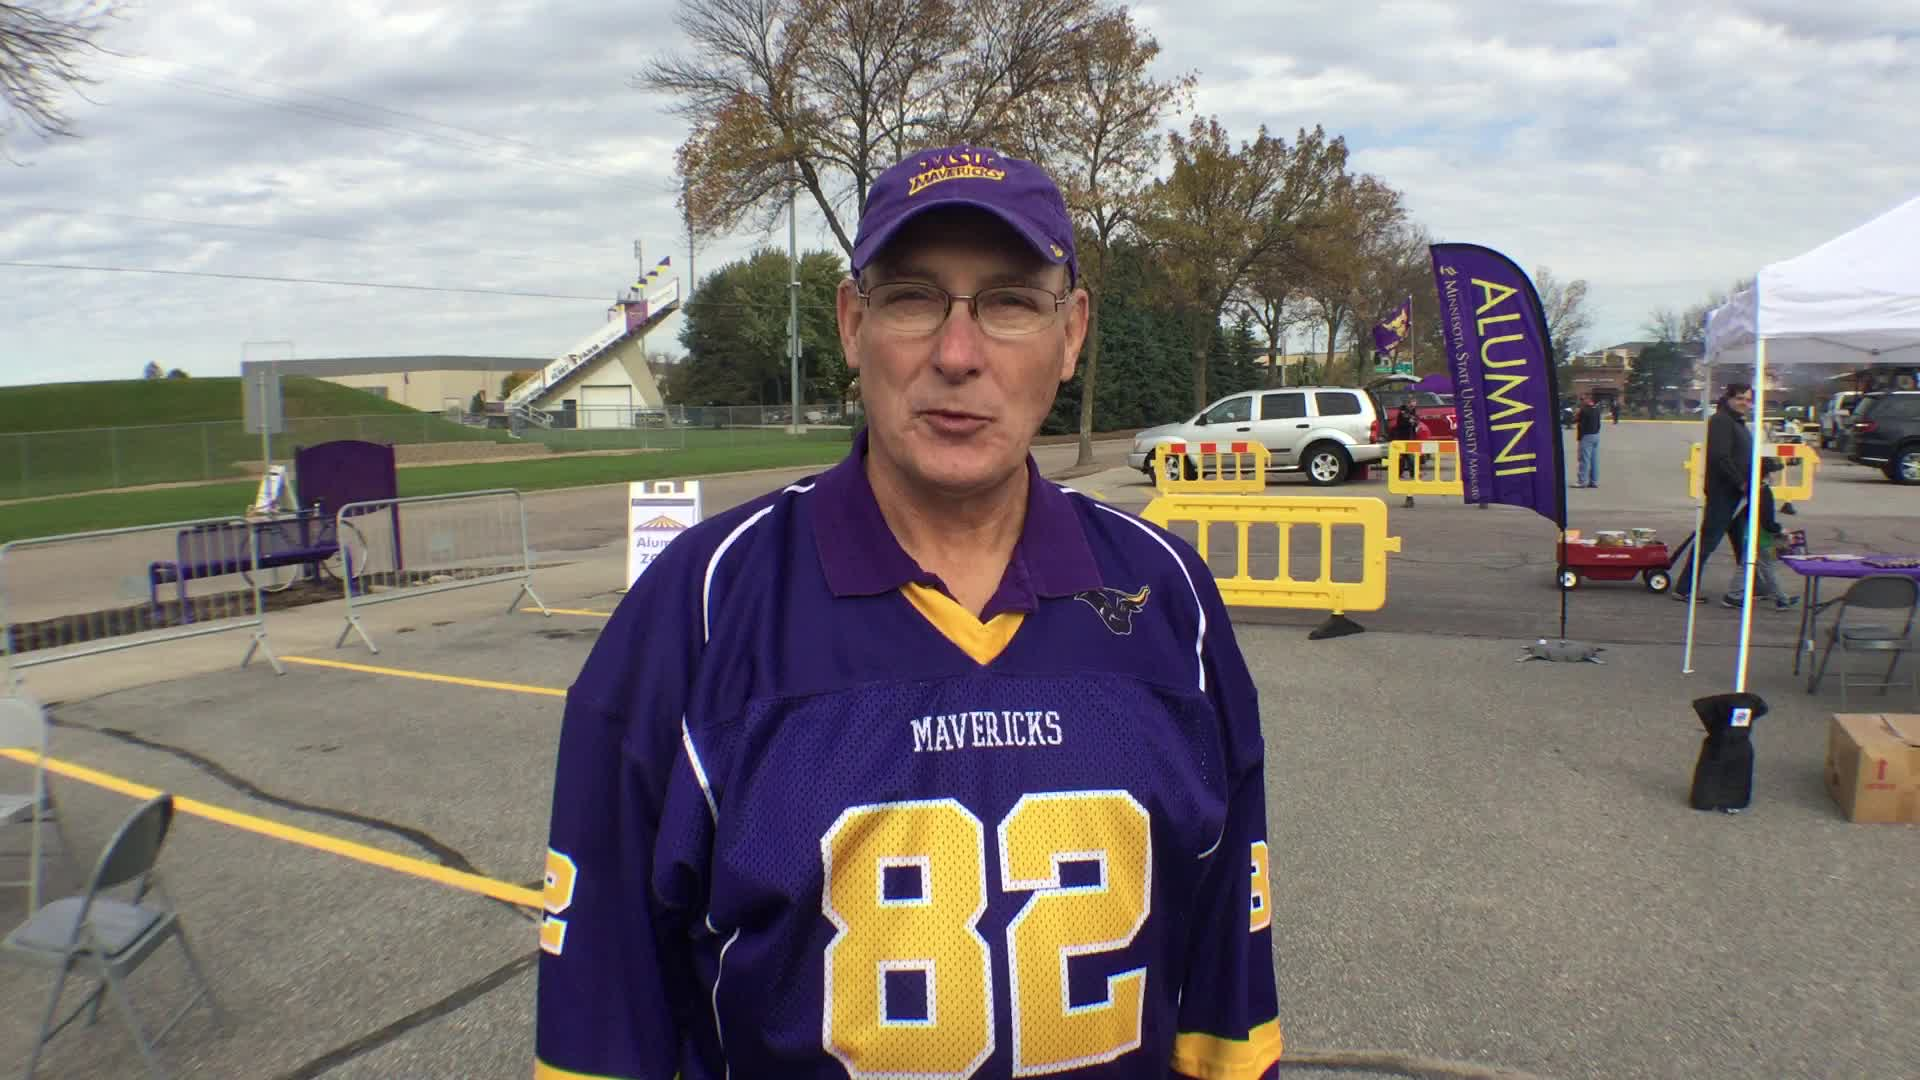 Thomas M. Roggow, St. Peter, MN - Homecoming 2016 at Minnesota State University, Mankato